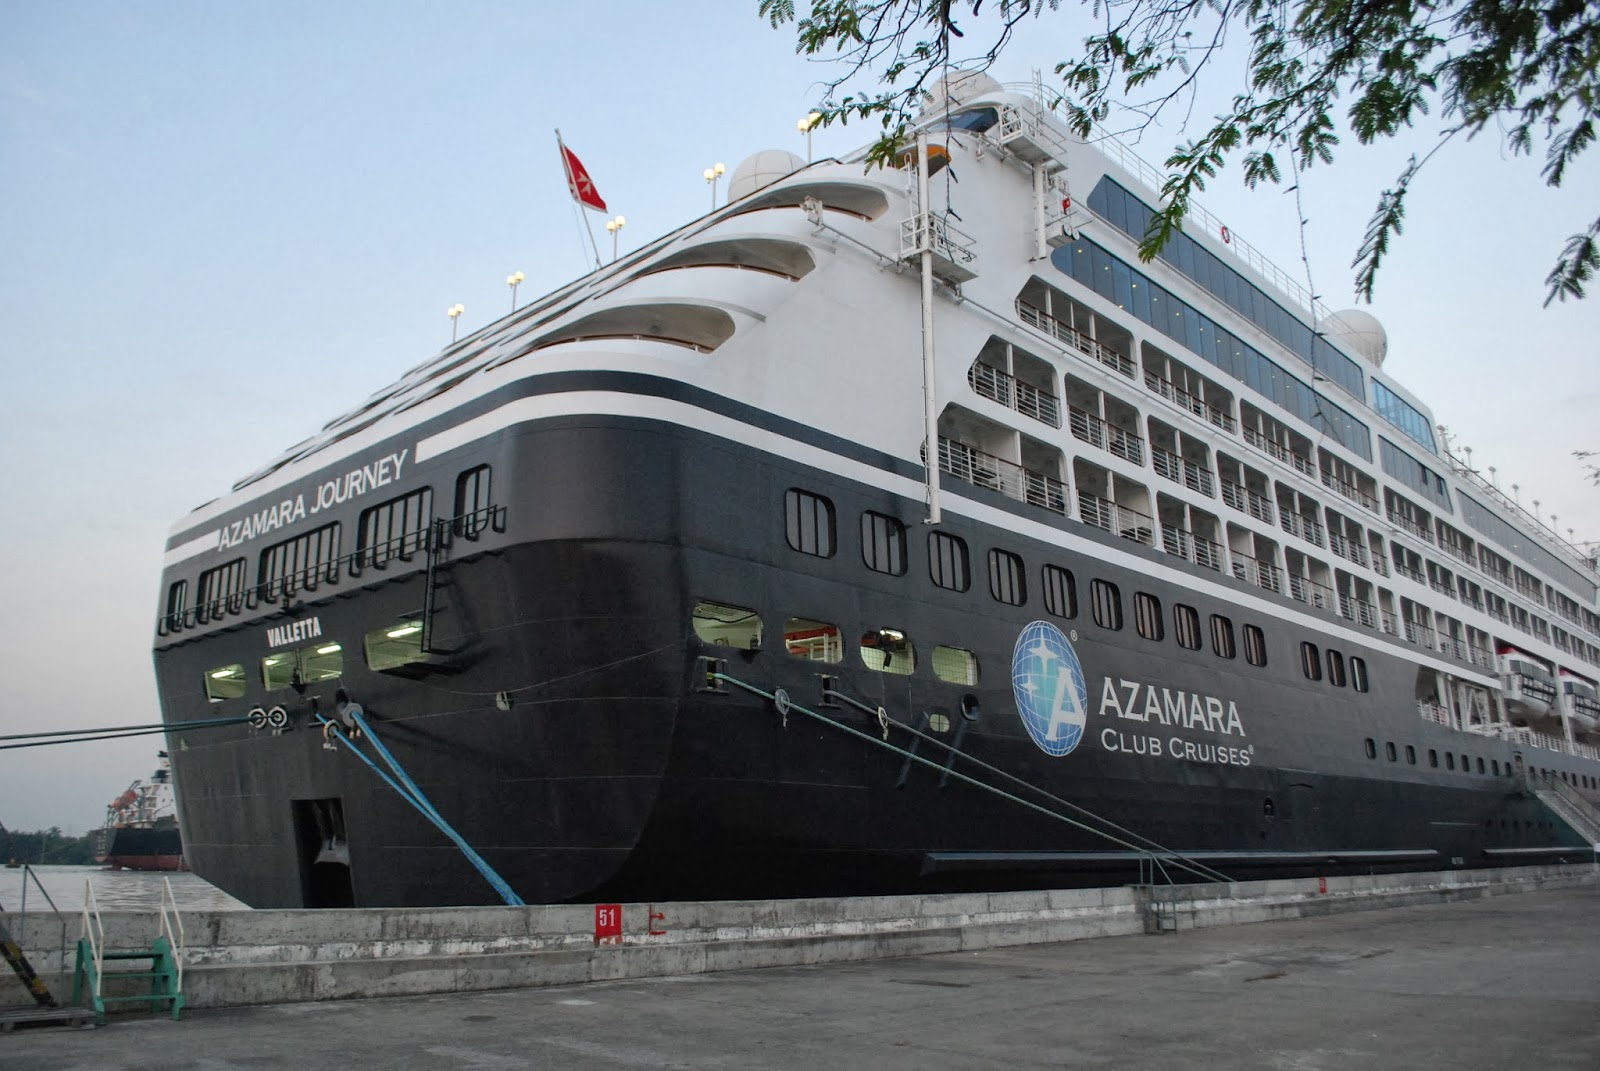 Azamara Cruise Tours at Klong Toey Port of Bangkok, Thailand